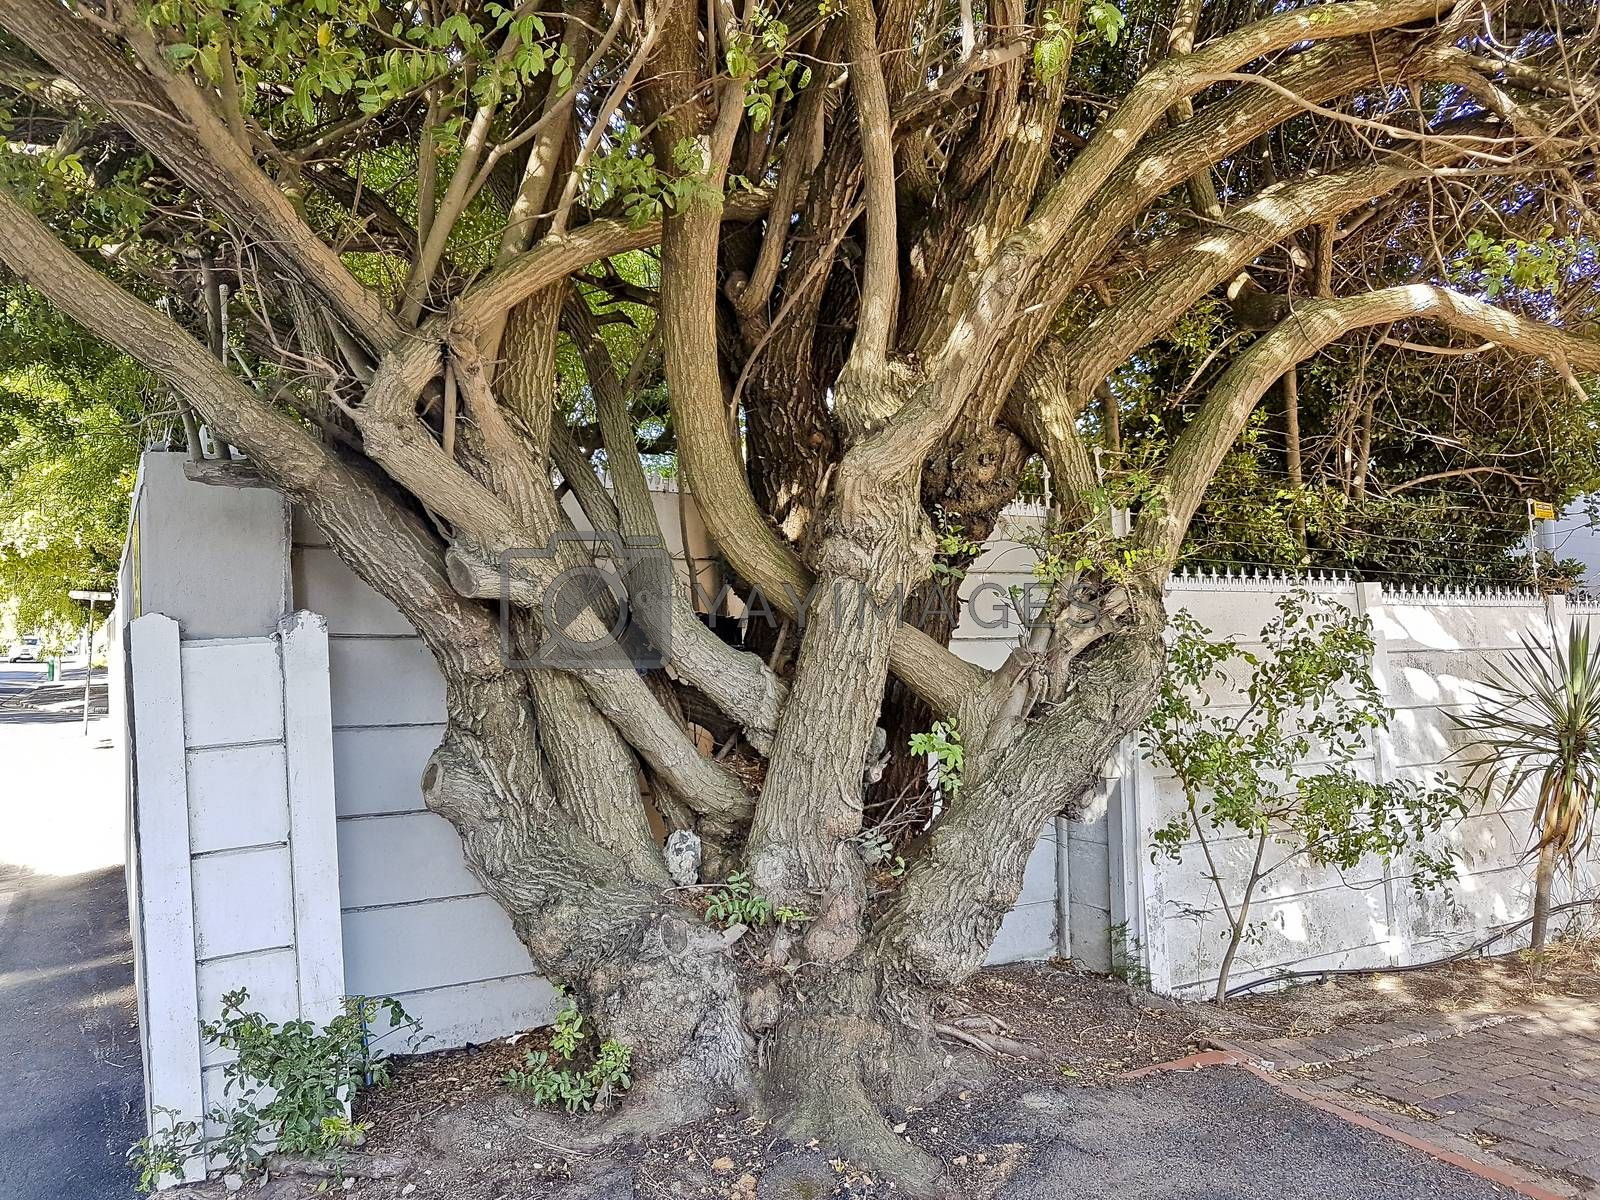 Big African unique and multi-stemmed tree in Cape Town, South Africa.